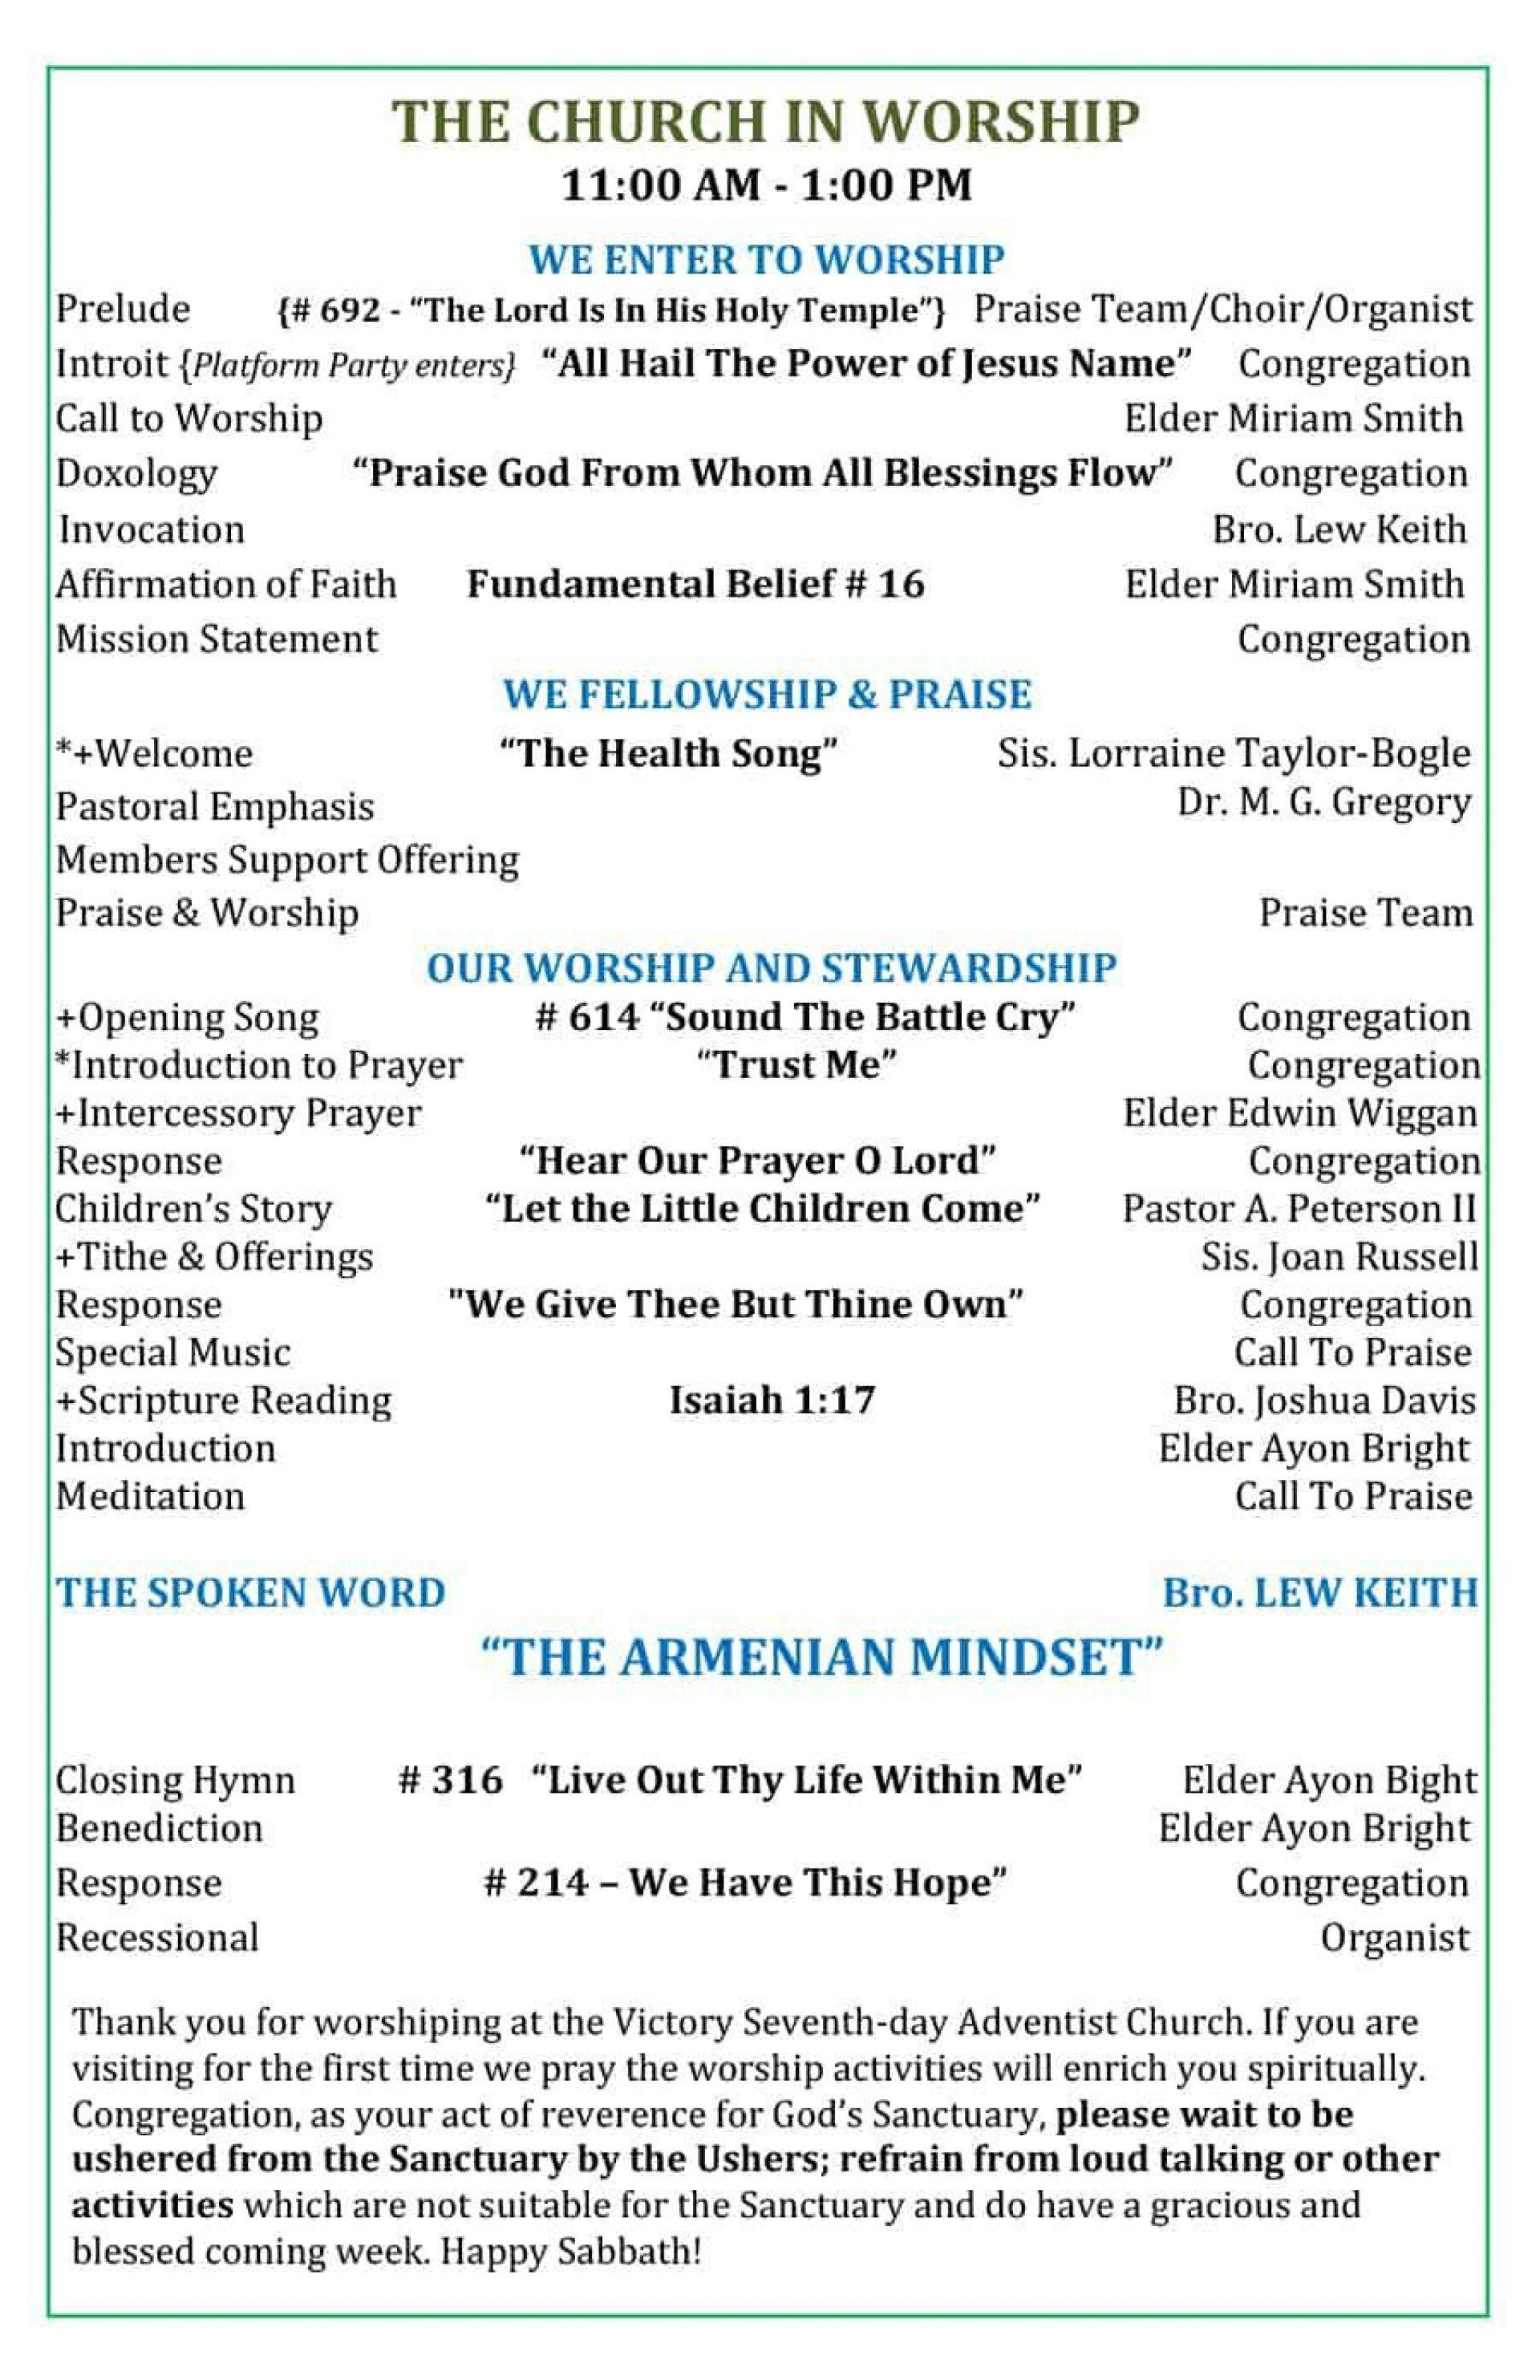 005 Fascinating Free Church Program Template Doc High Resolution Full